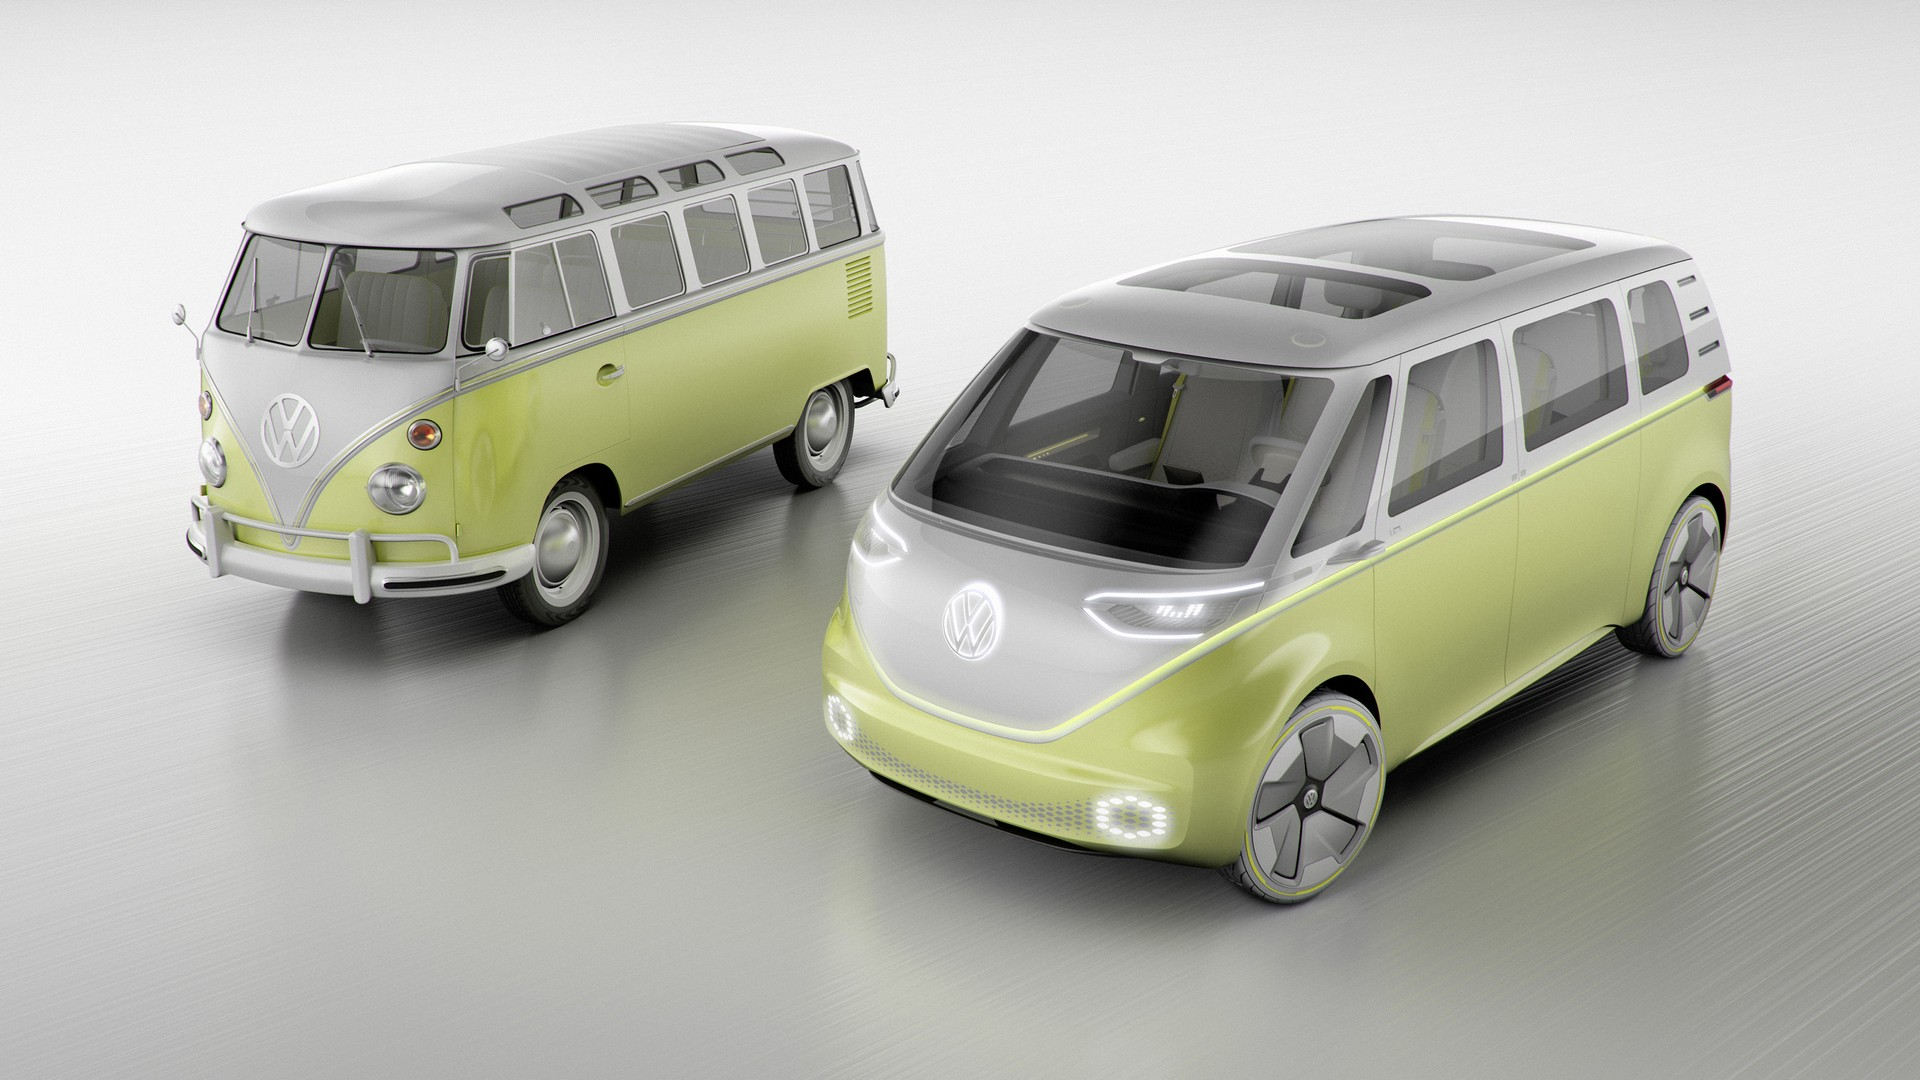 The Volkswagen Van Is Back It Will Be Electric And Self Driving